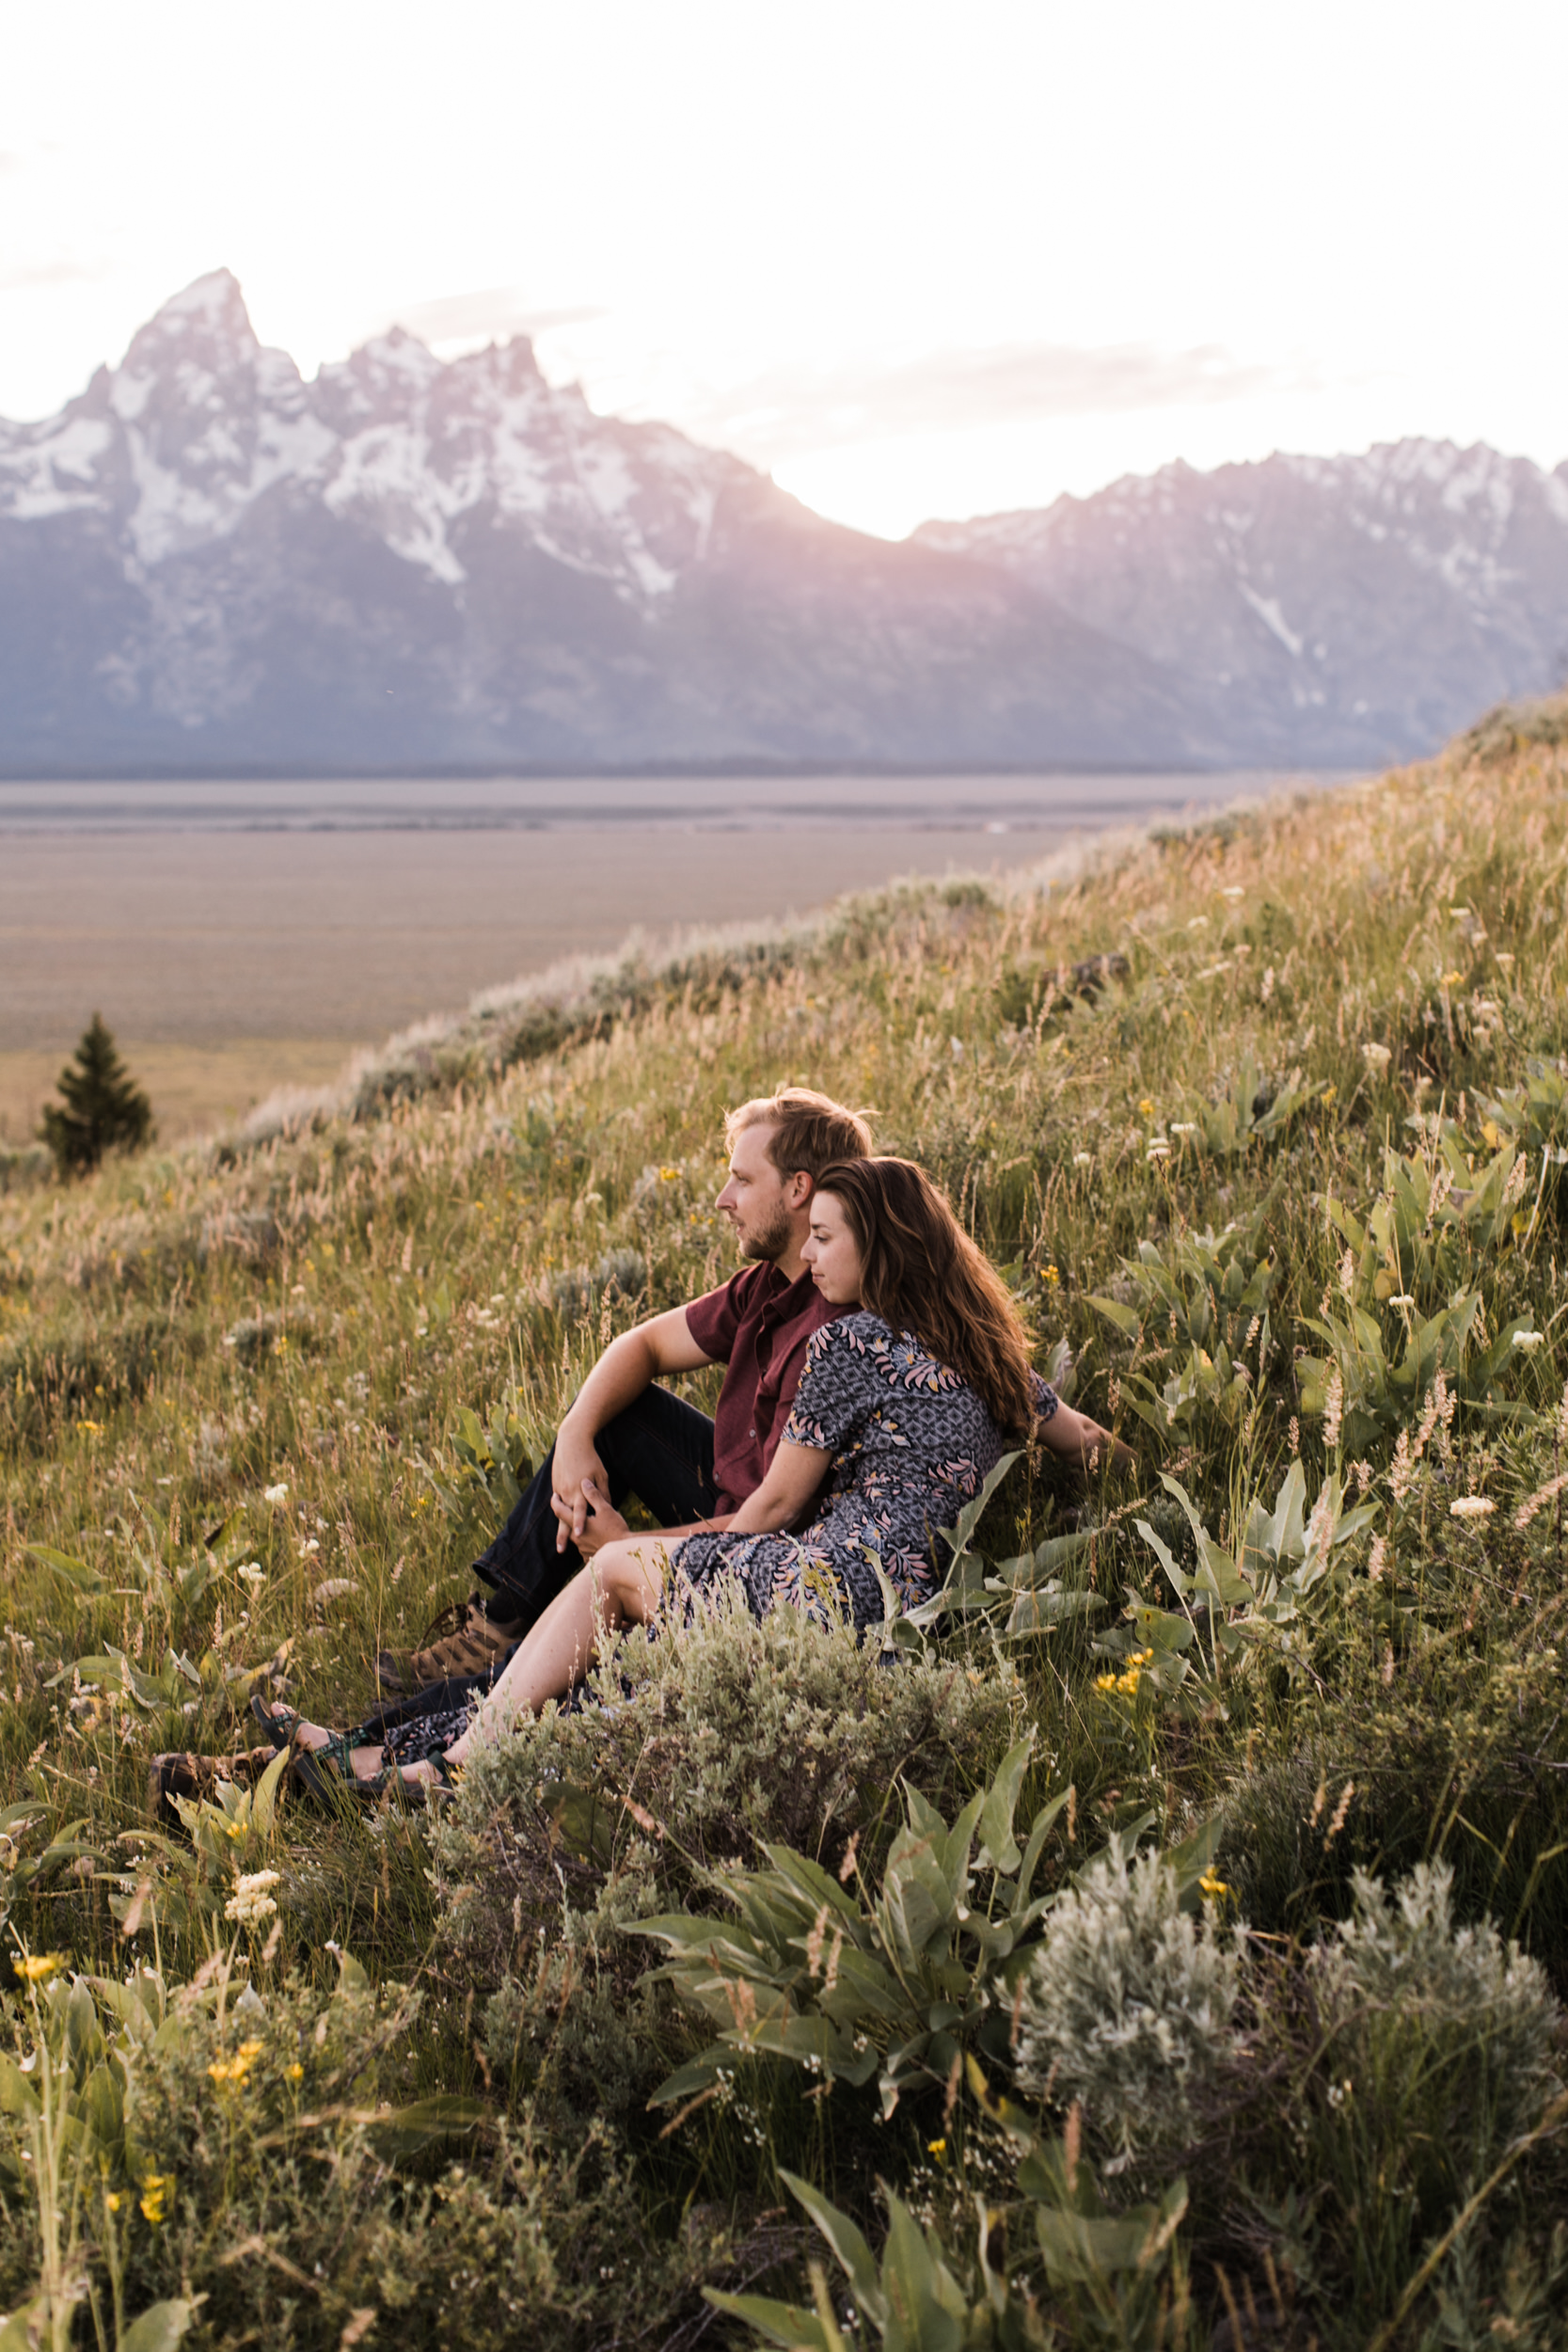 maggie + gary's adventure engagement session in grand teton national park | jackson hole, wyoming wedding photographer | the hearnes adventure photography